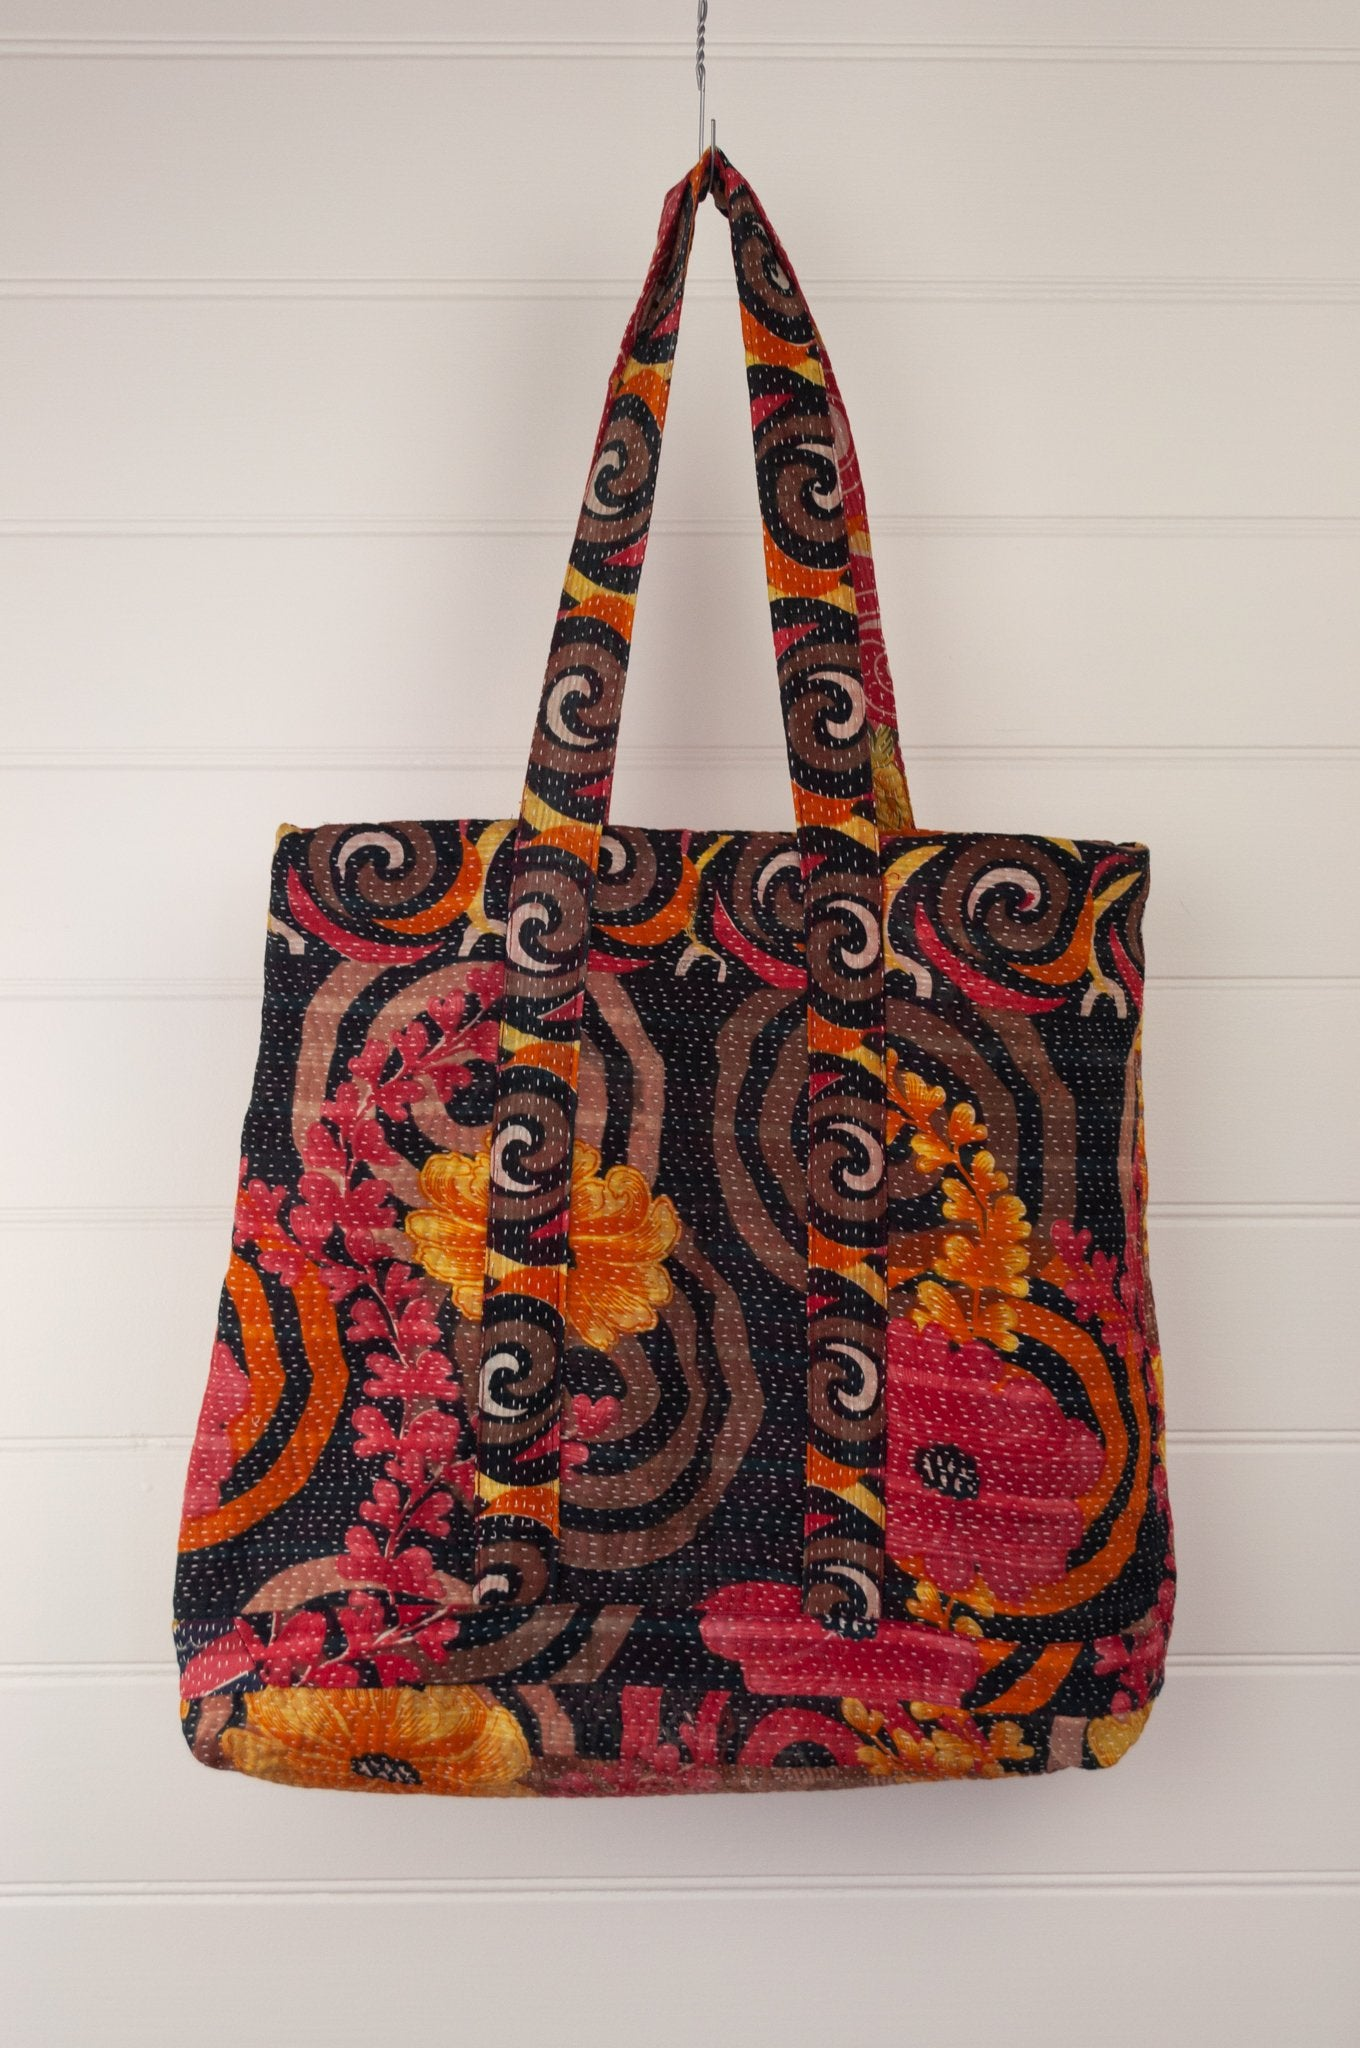 Vintage kantha tote bag, made from recycled cotton saris, in black, red and gold floral.